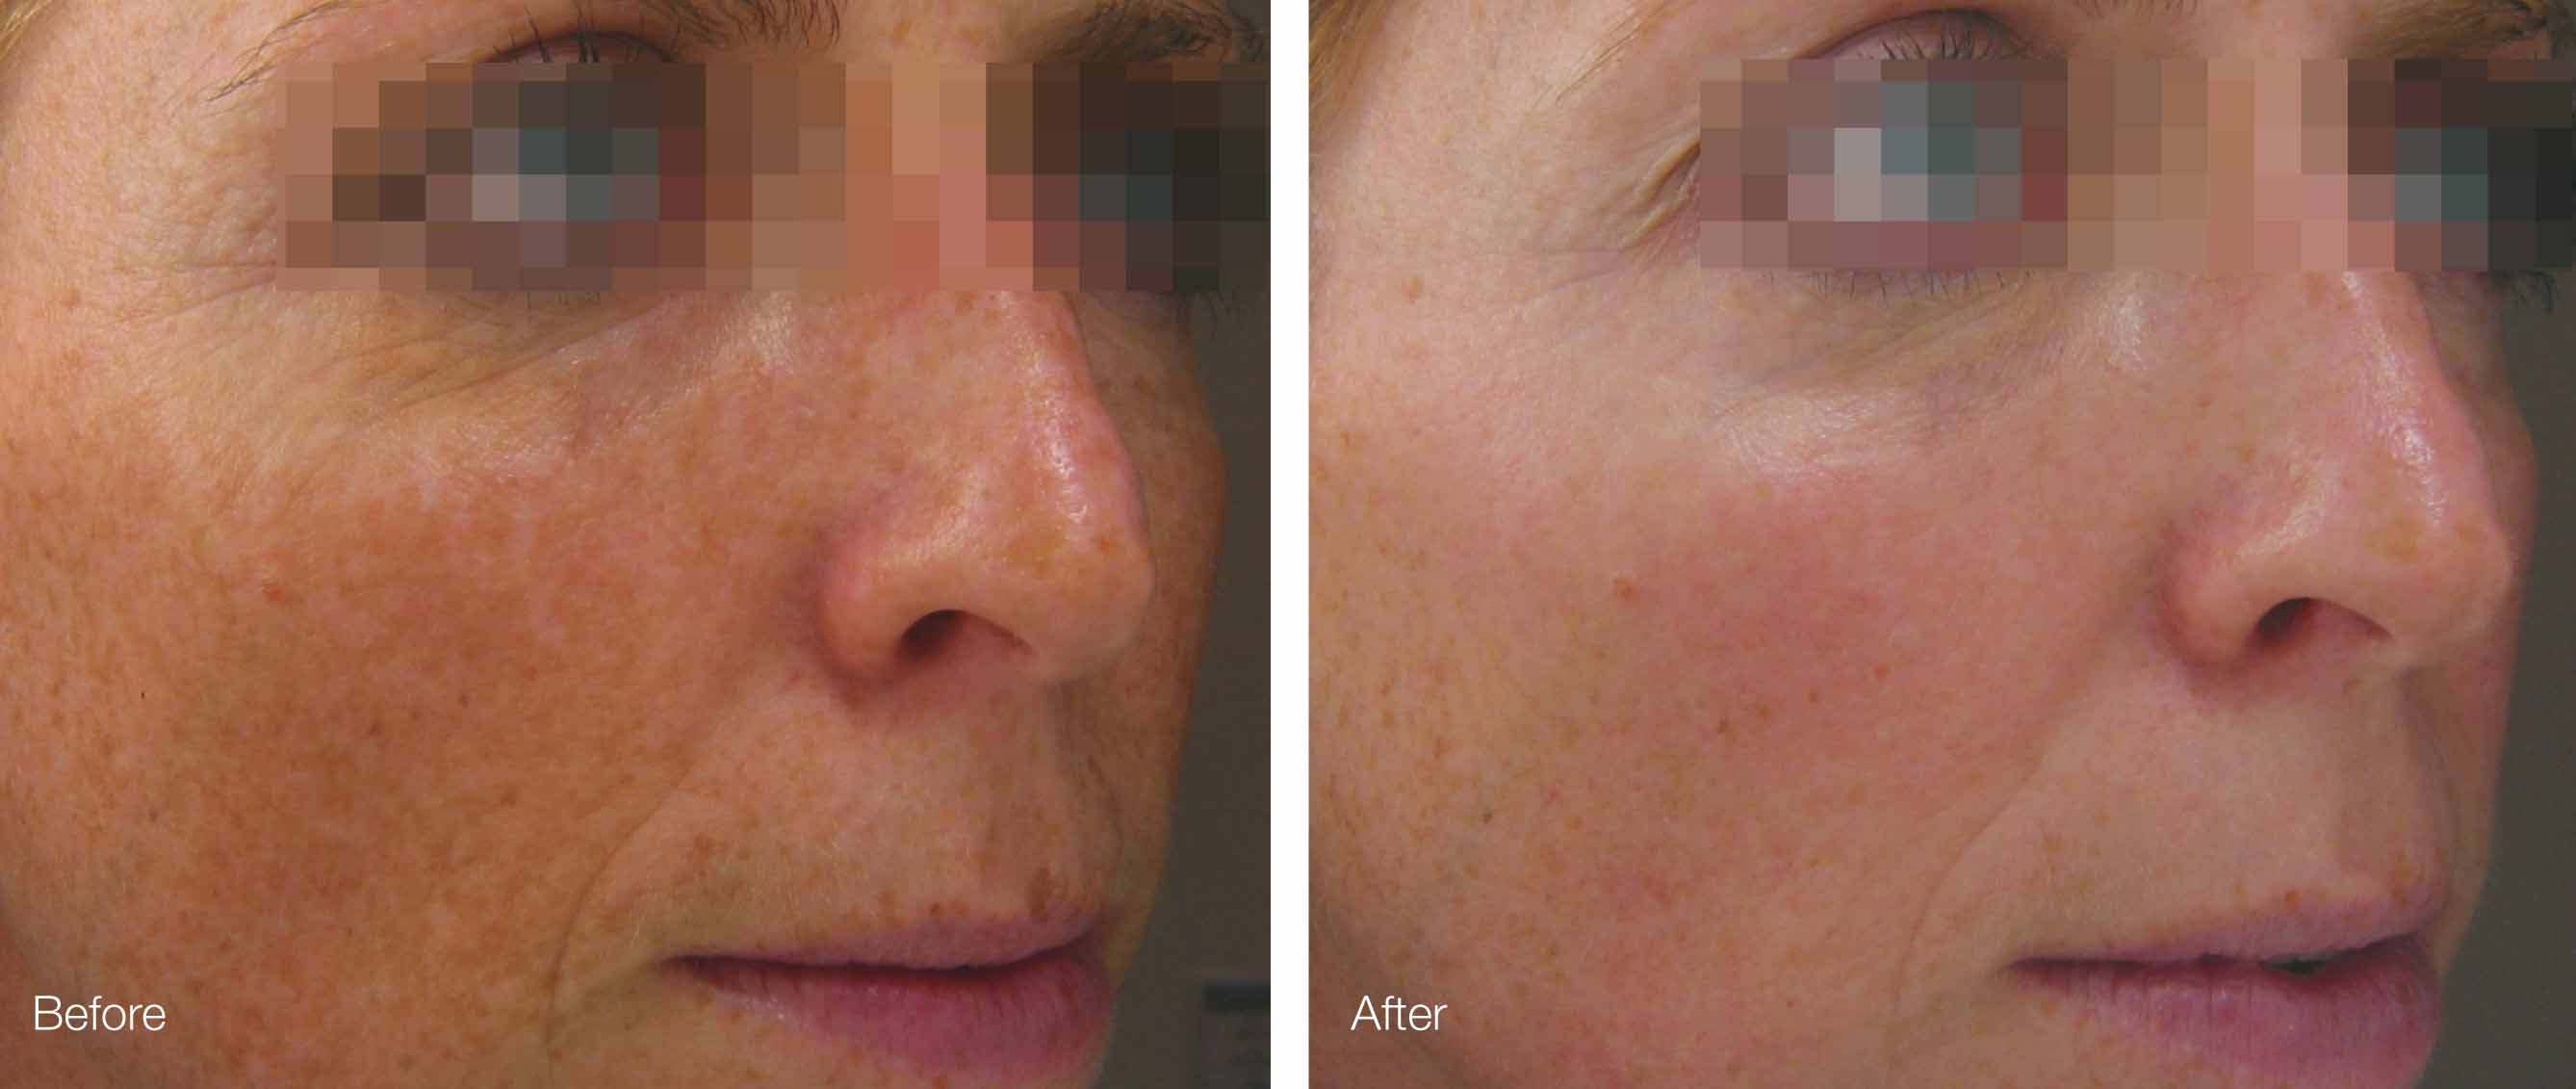 Ultraceuticals | Medical Skin Care | Before and After